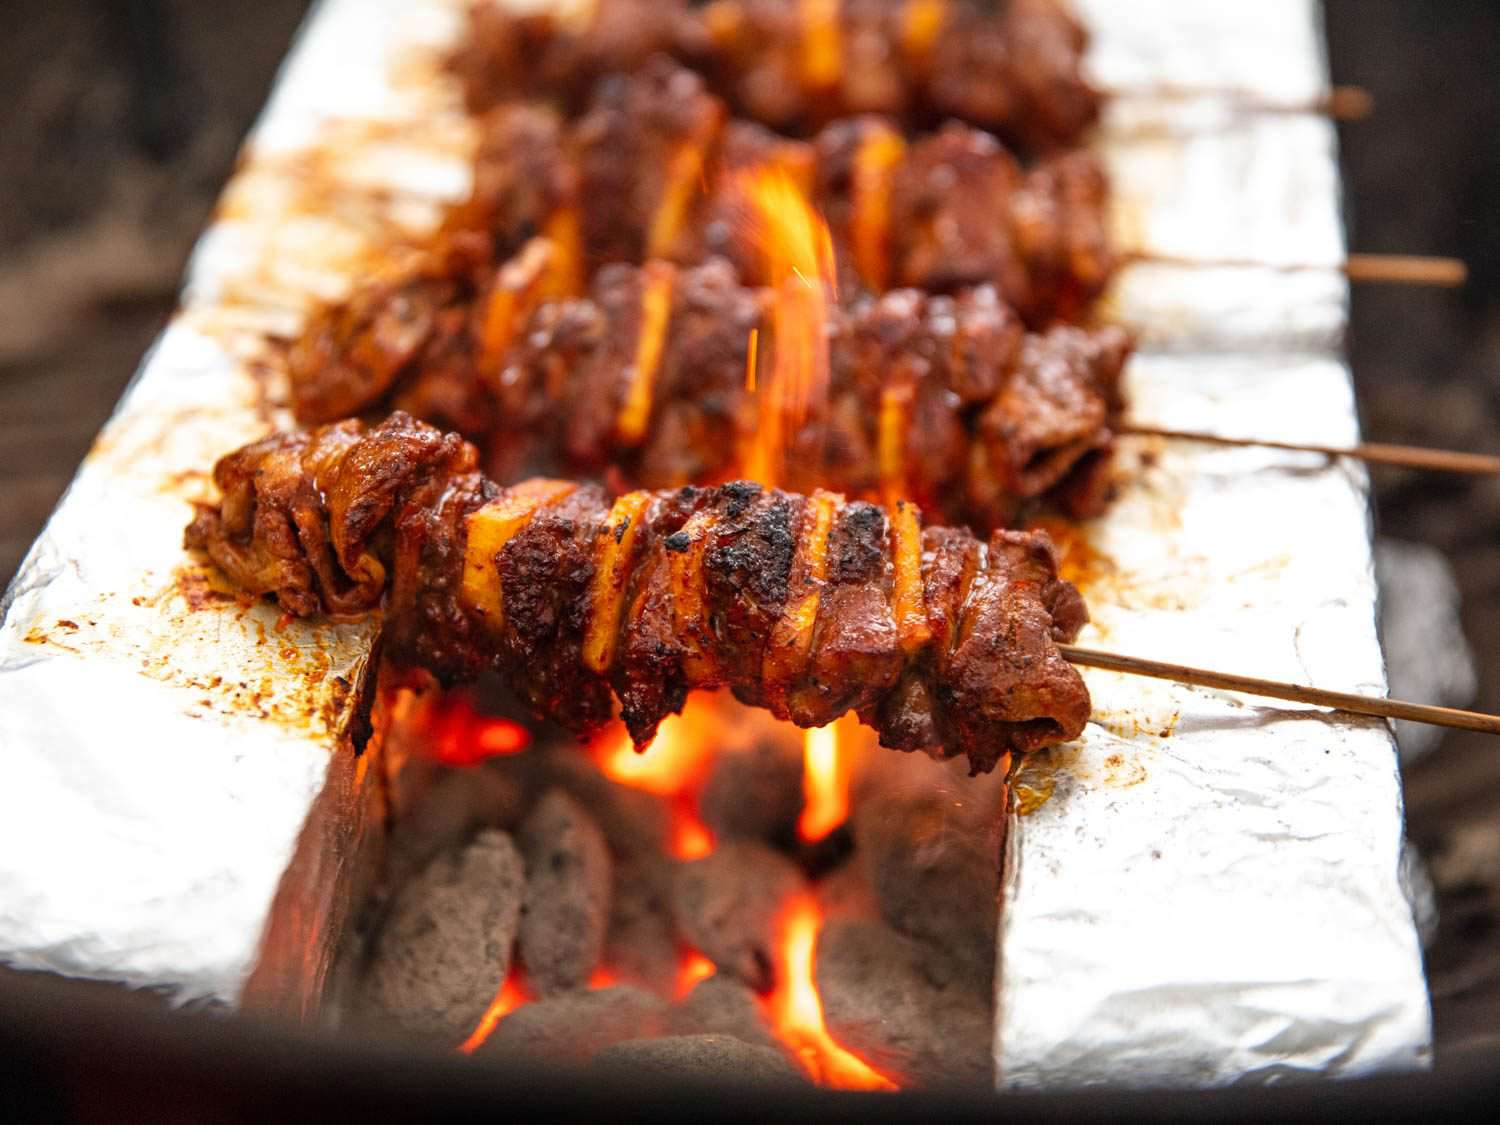 Flames licking up the sides of al pastor skewers